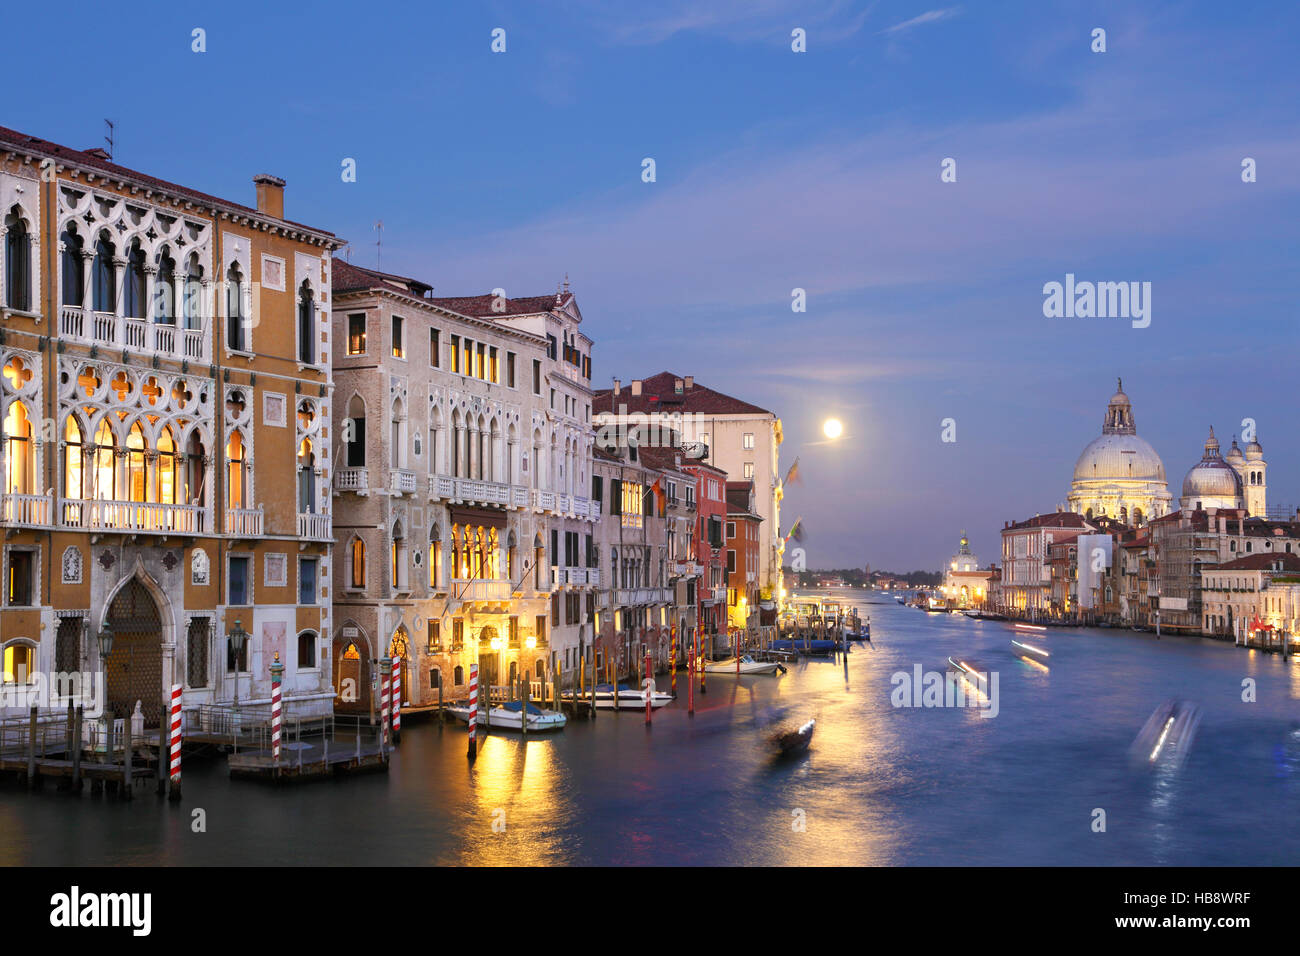 Palazzo Franchetti on Grand Canal, Venice, Italy, at dusk, with full moon. View from Academia bridge. - Stock Image